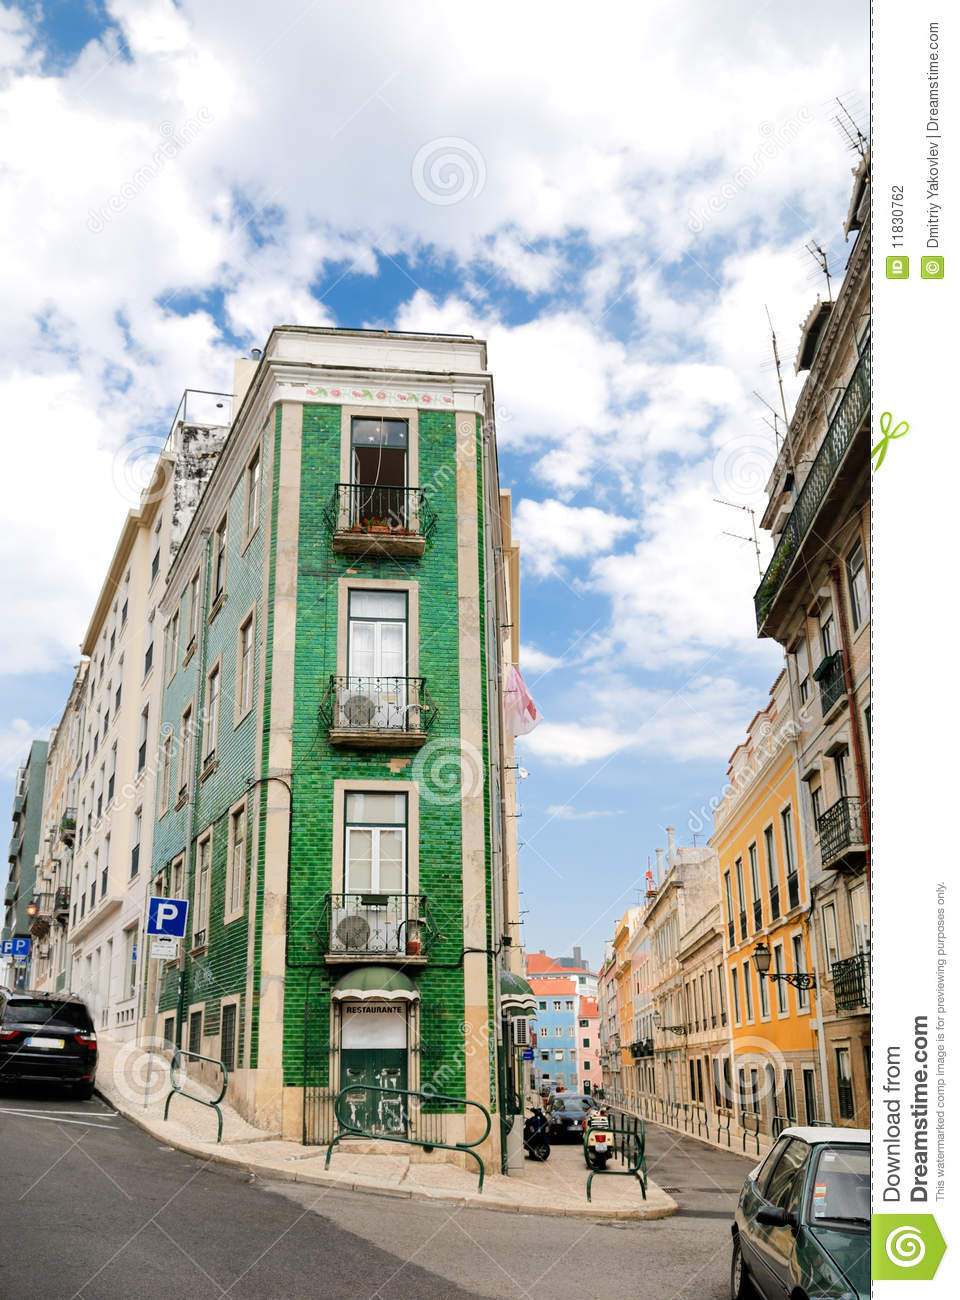 Traditionelles haus in lissabon stockfotografie bild for Traditionelles haus